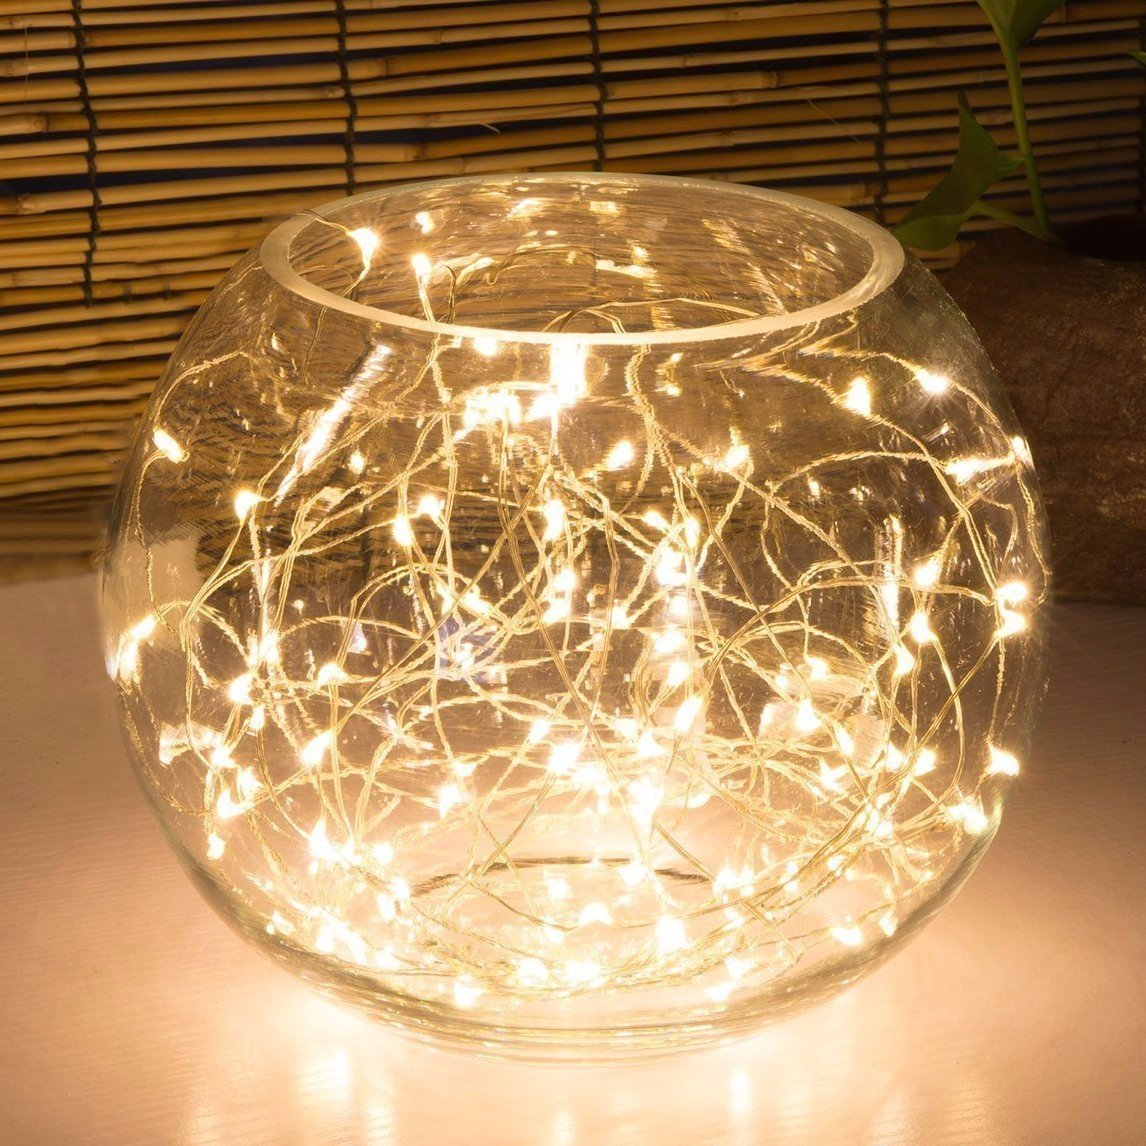 10m 100 Led Waterproof Copper String Fairy Lights Usb Charging Party Wedding Festival Home Decor